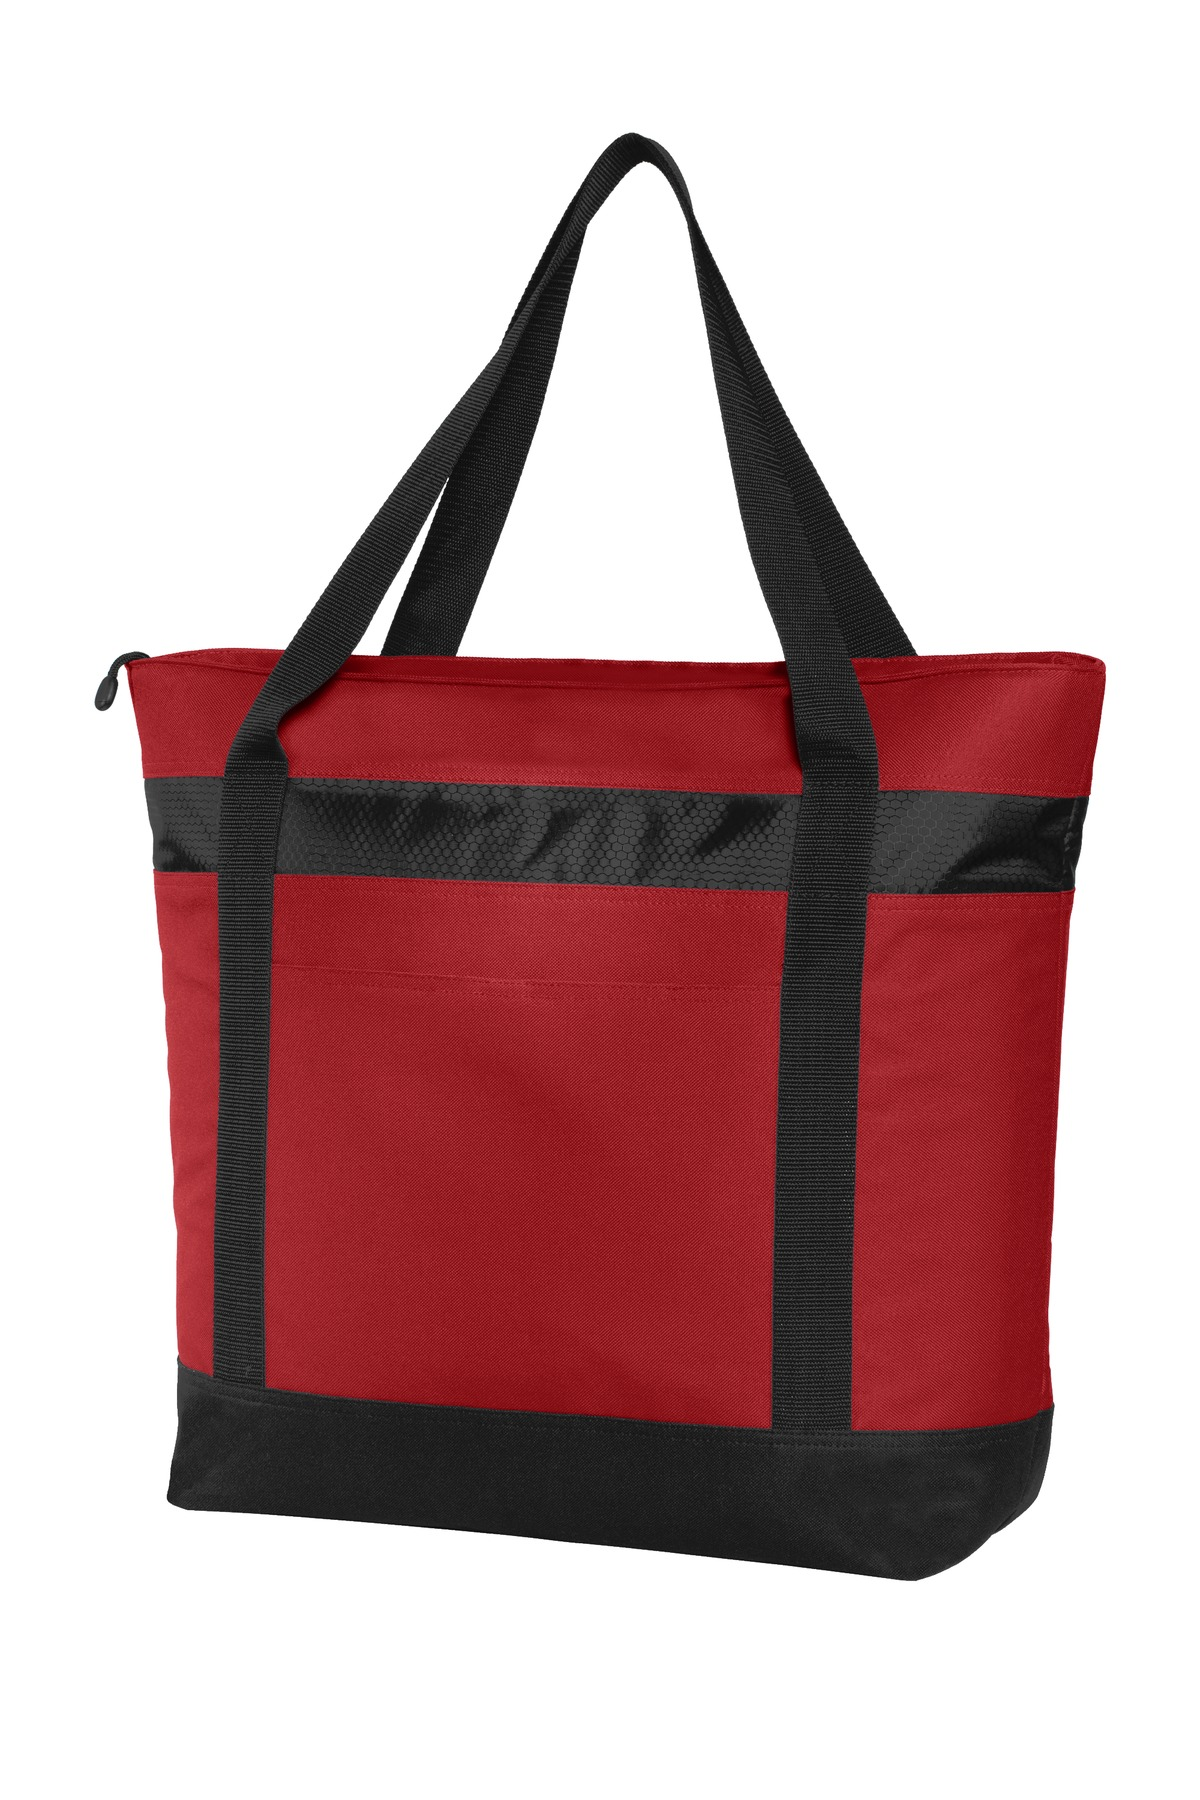 Port Authority ®  Large Tote Cooler. BG527 - Chili Red/ Black